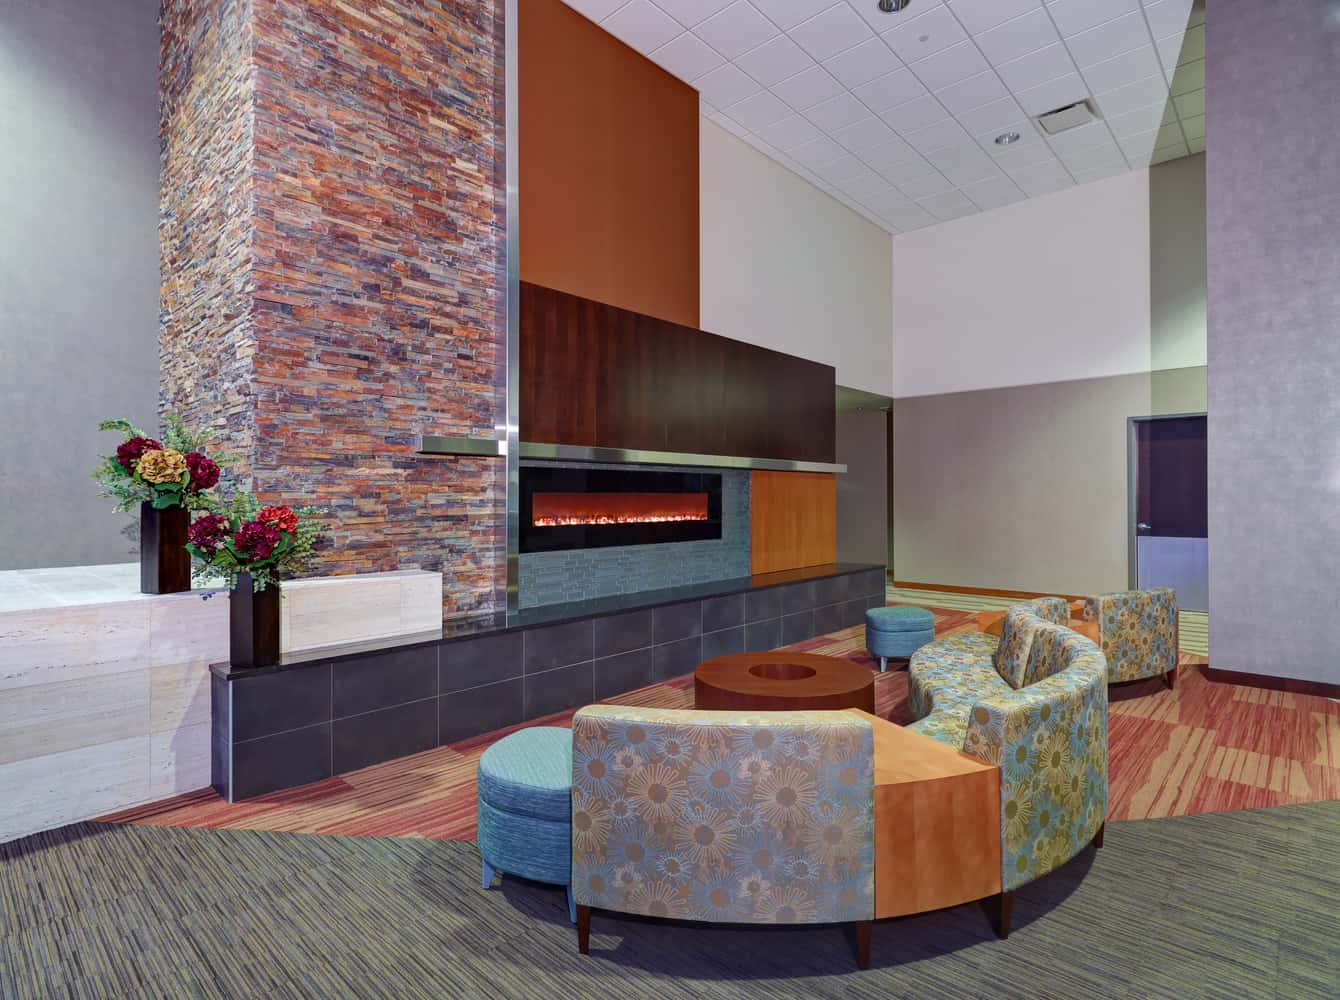 THRIVENT FINANCIAL CORPORATE COMMUNITY CENTER